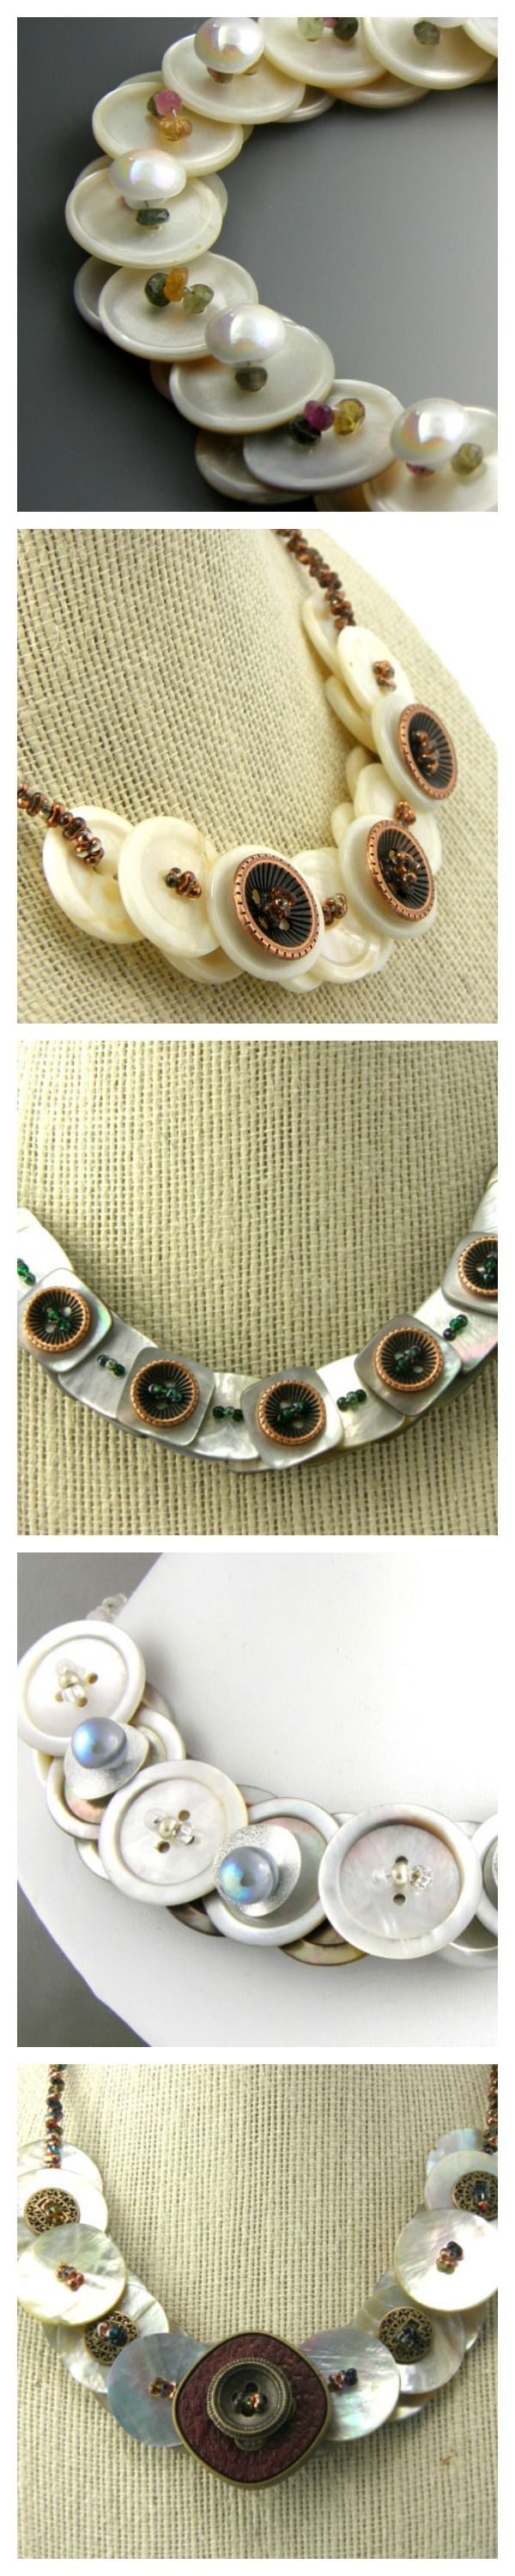 Made from mother of pearl buttons and shell buttons with a variety